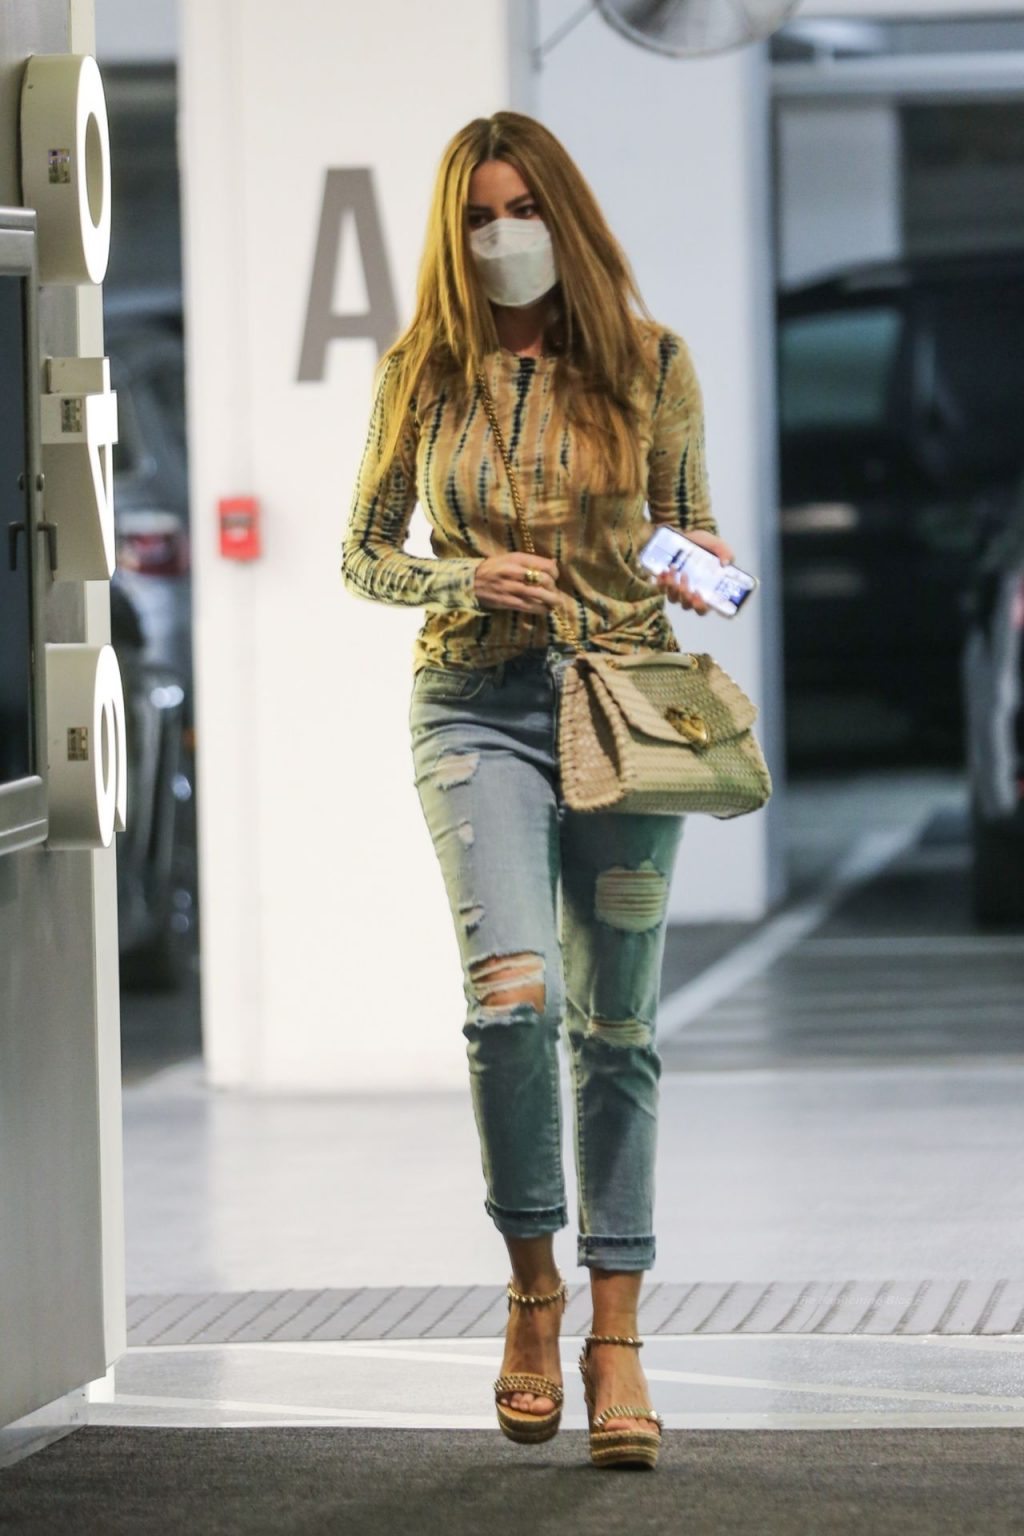 Sofia Vergara Gets Dressed Up in Tie-Dye and Ripped Jeans in Beverly Hills (20 Photos)